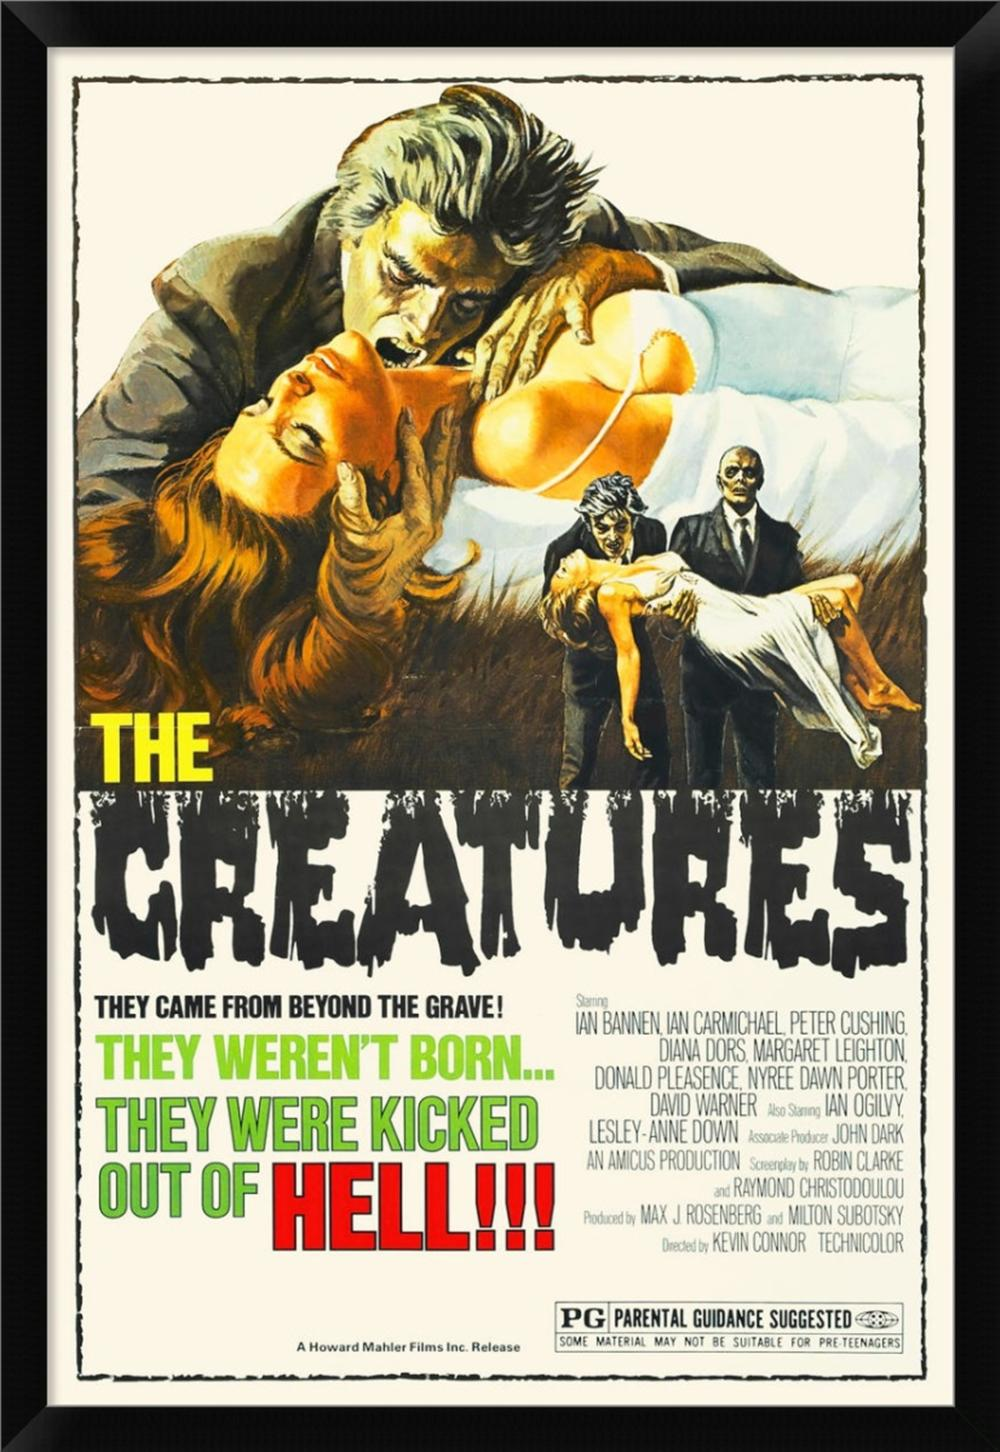 HOLLYWOOD PHOTO ARCHIVE - THE CREATURES